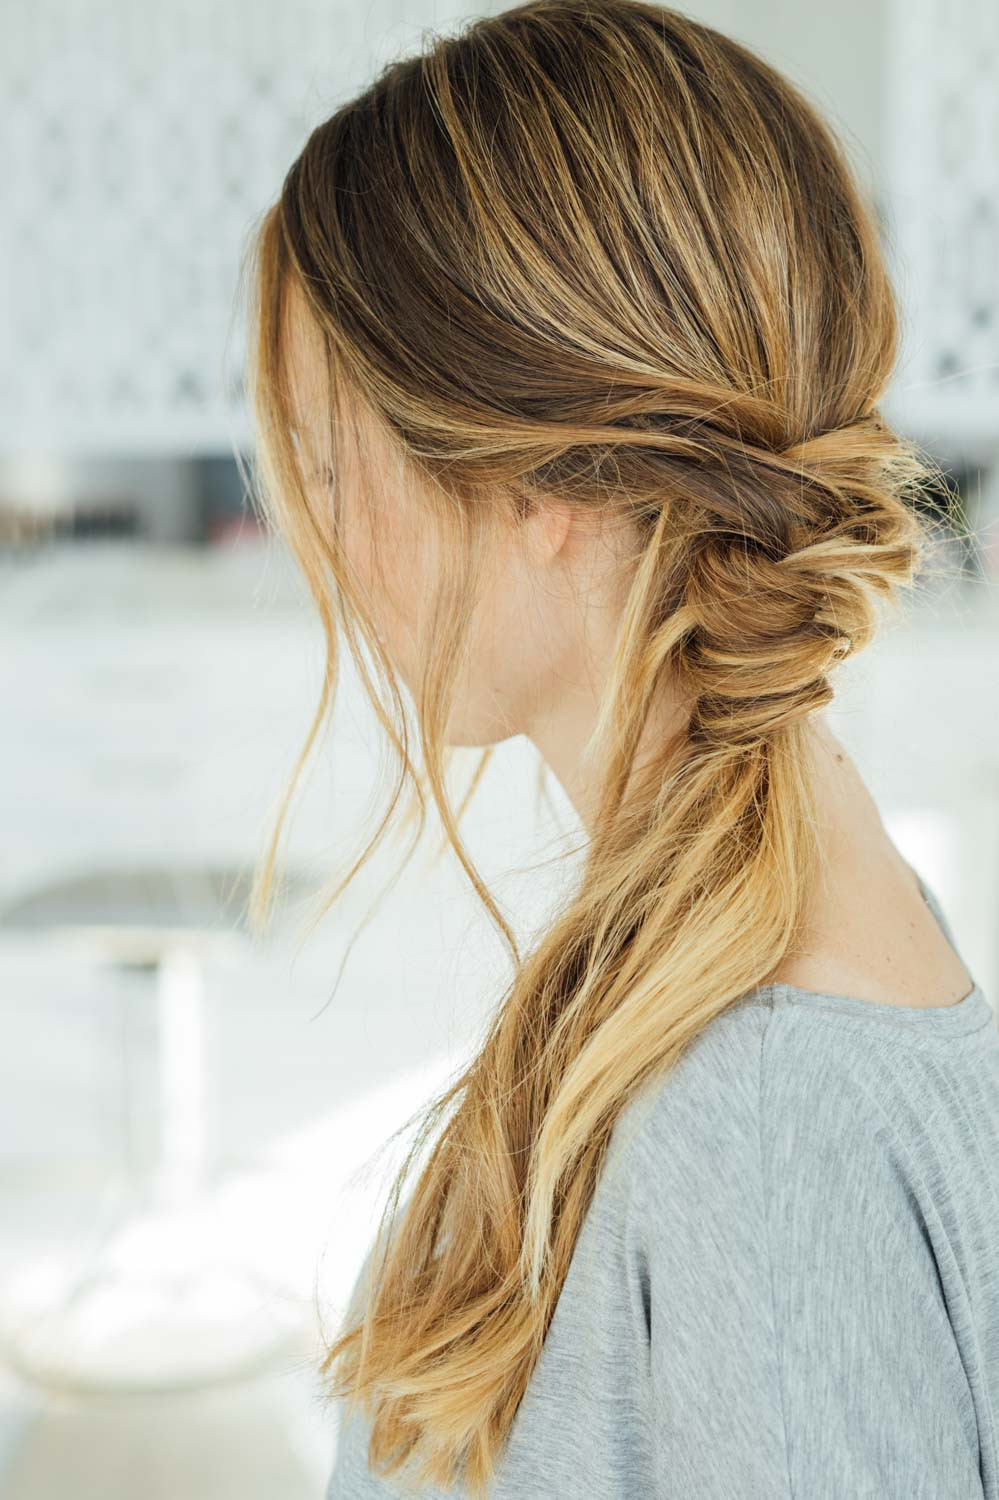 Best ideas about Easy To Style Haircuts . Save or Pin 16 Easy Hairstyles for Hot Summer Days Now.